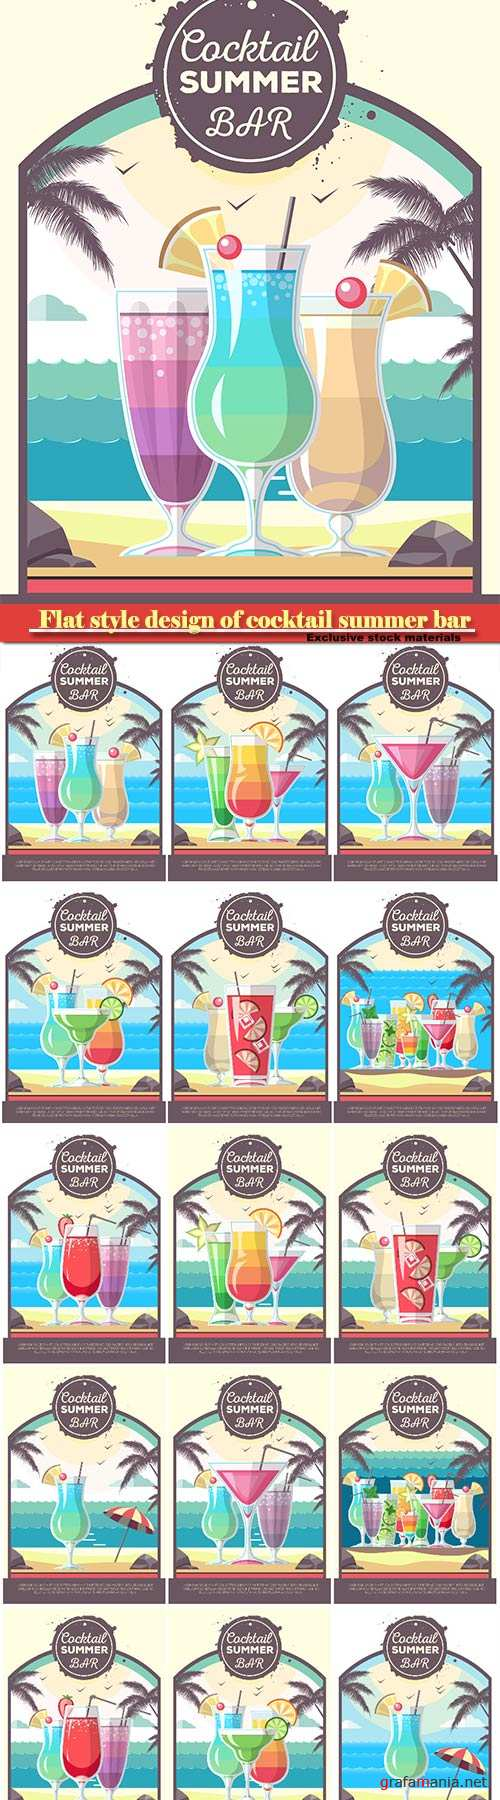 Flat style design of cocktail summer bar, cocktail vector menu